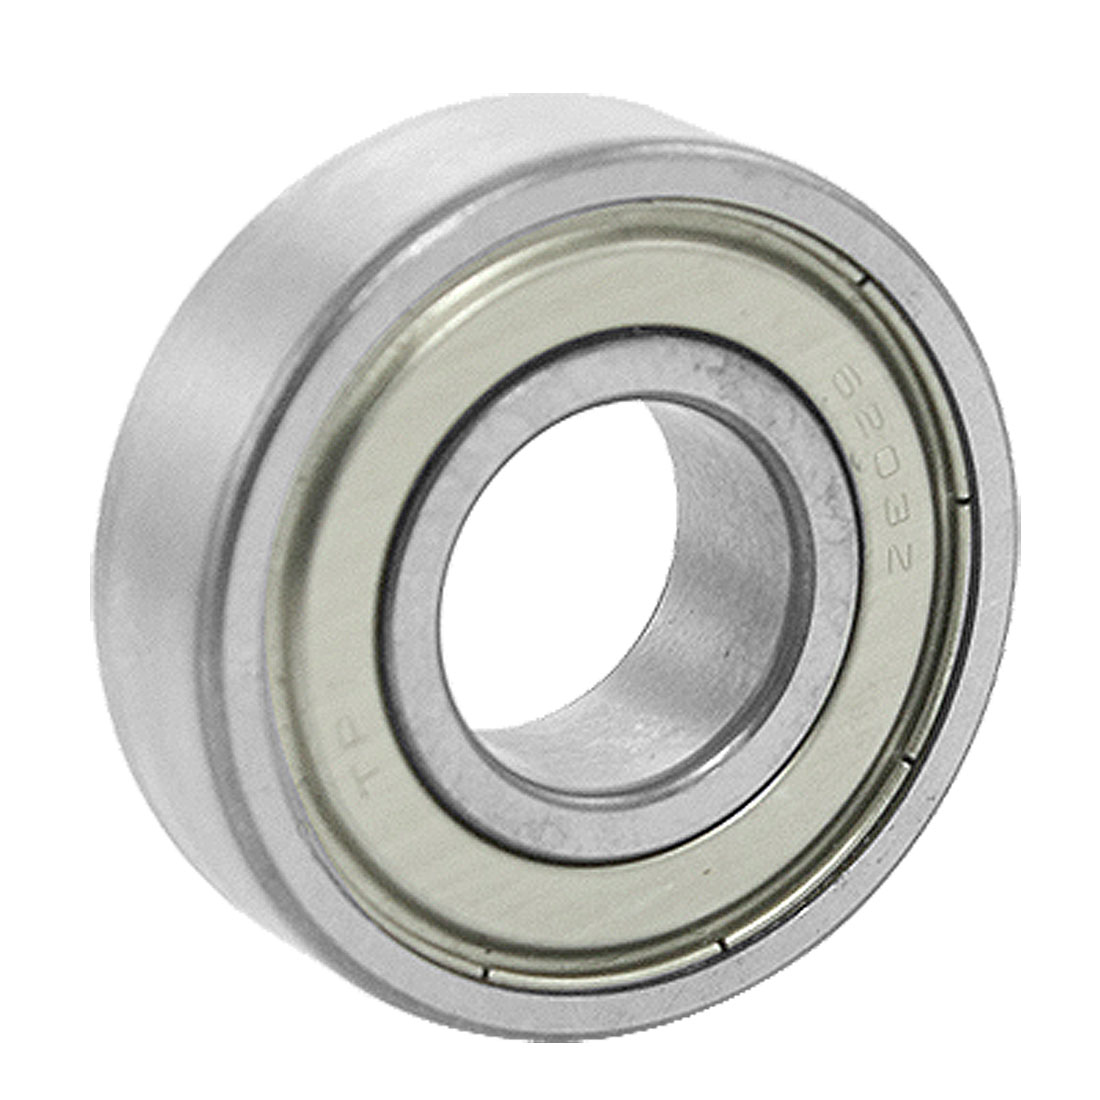 17 x 40 x 12mm Deep Groove Dual Shields Metric Ball Bearing 6203Z